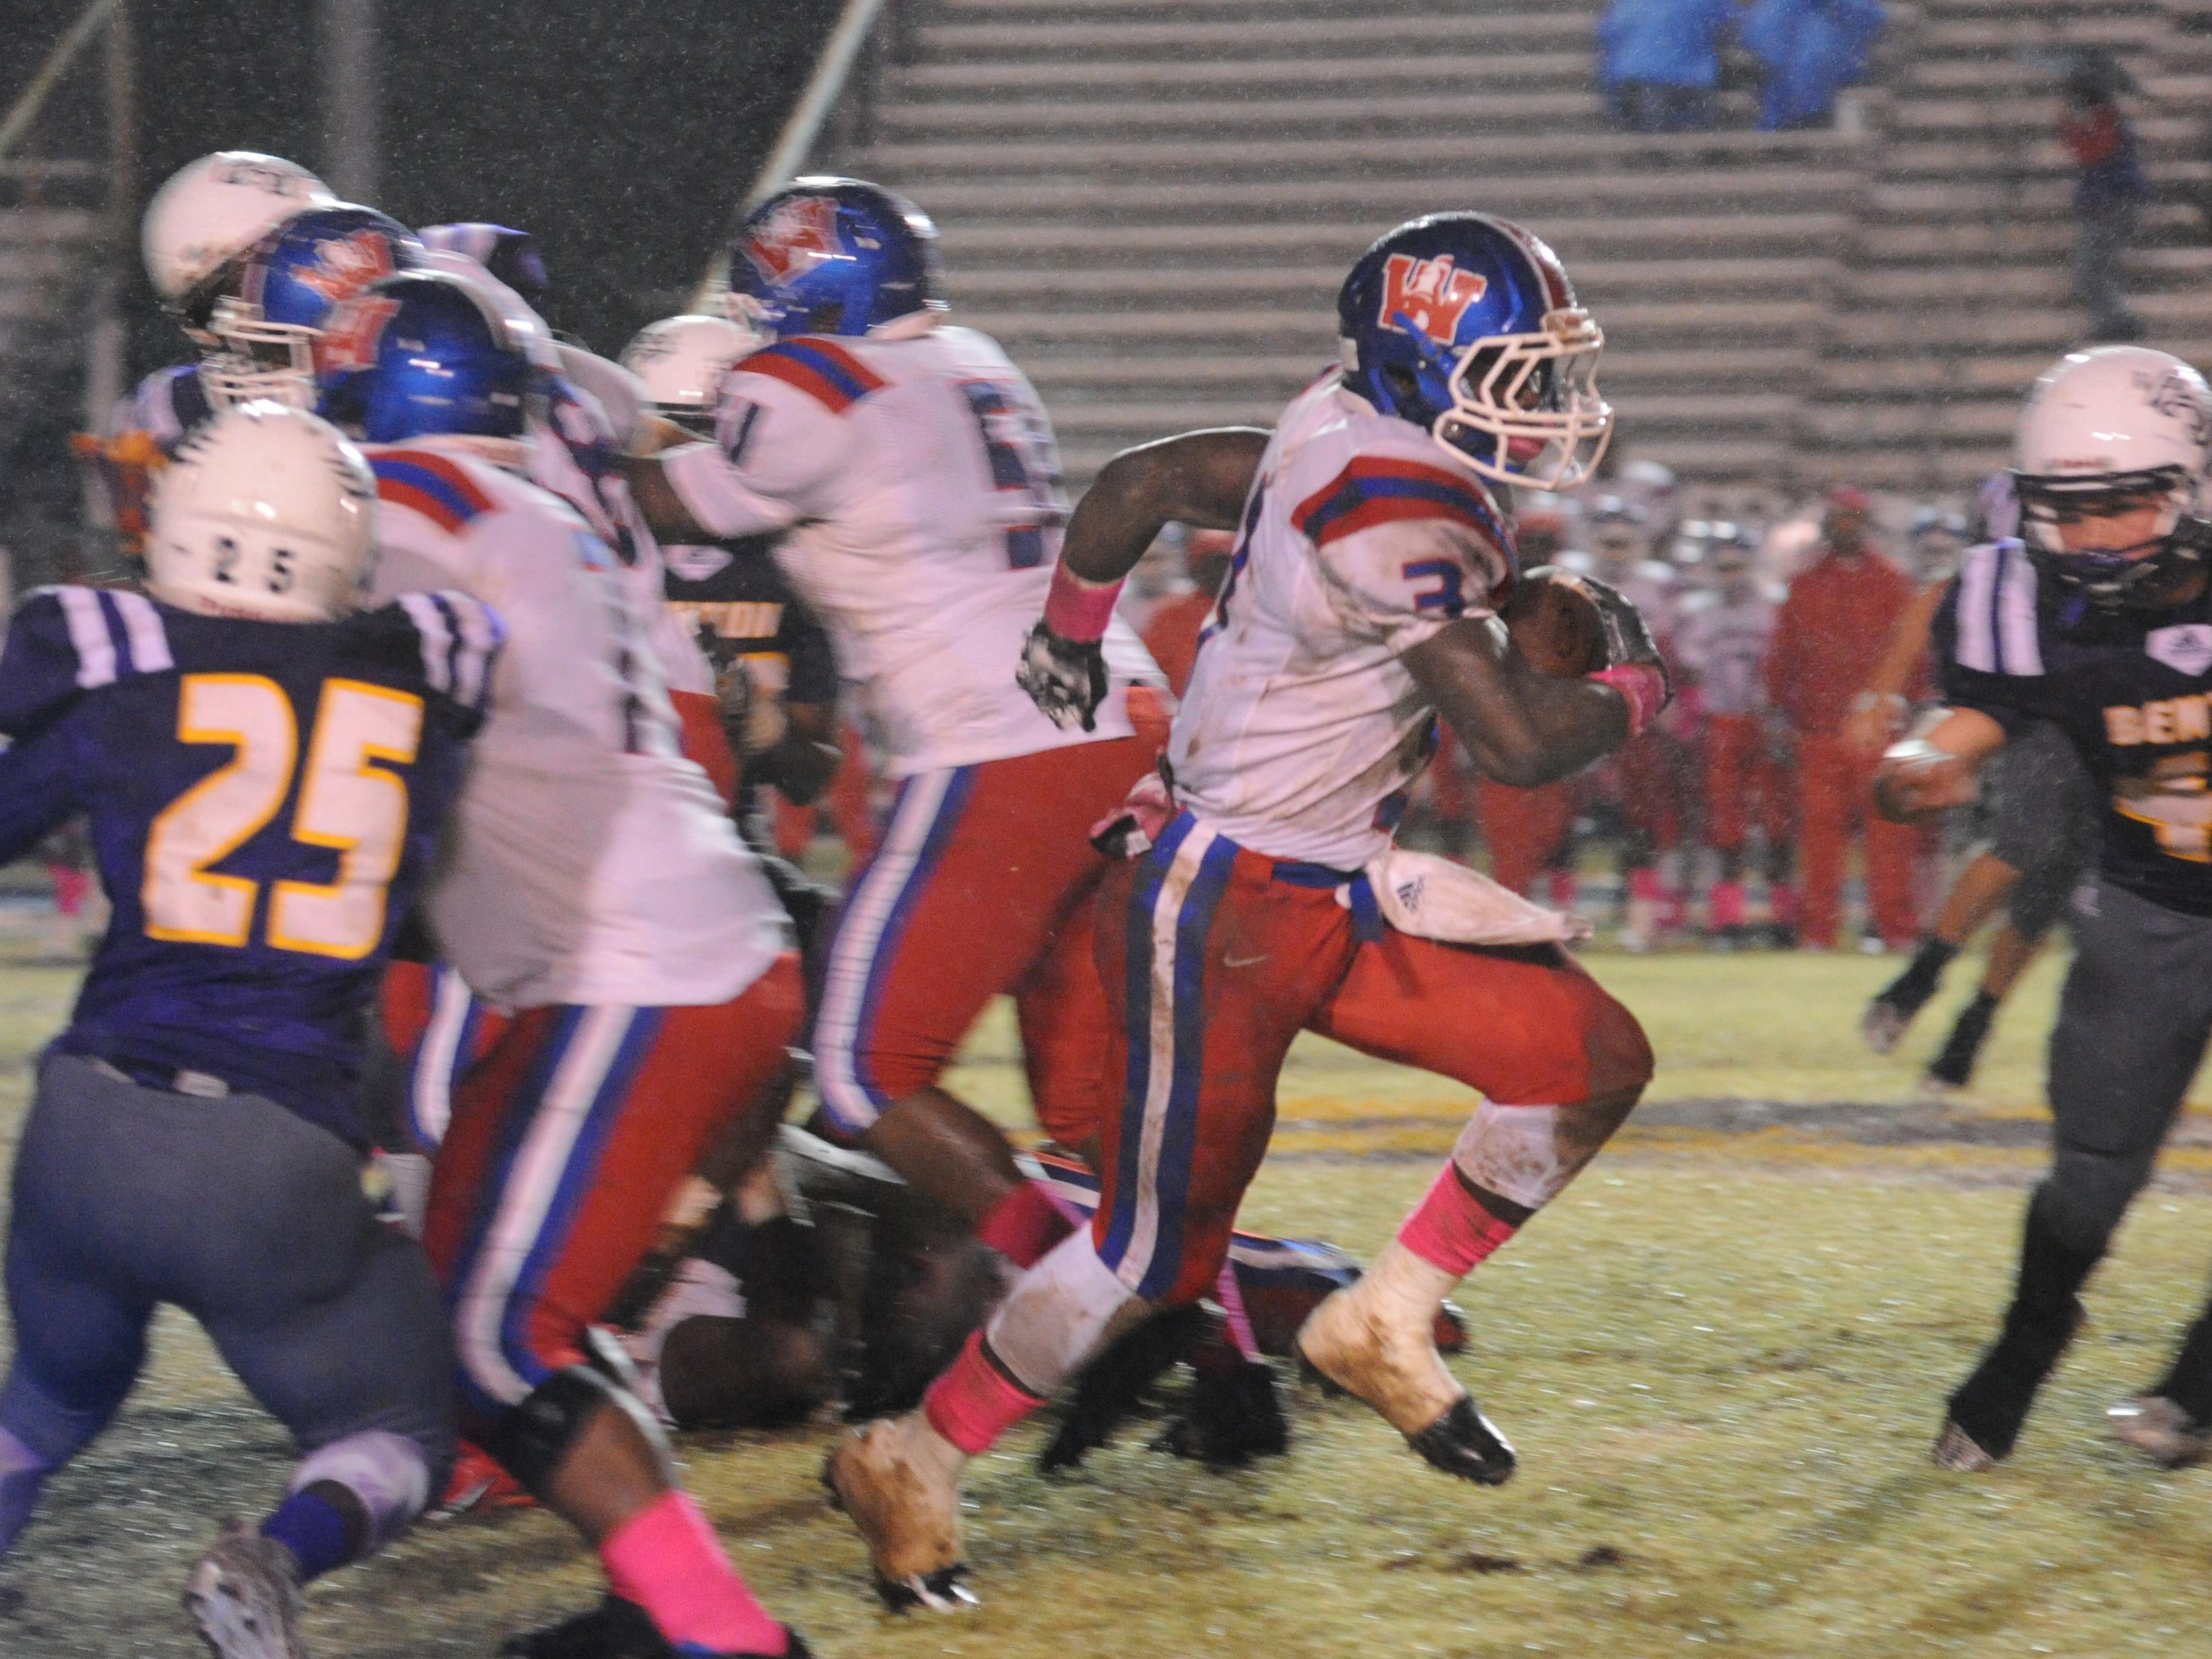 Woodlawn's Trivensky Mosley returns to the Knights after leading the city in rushing last season.